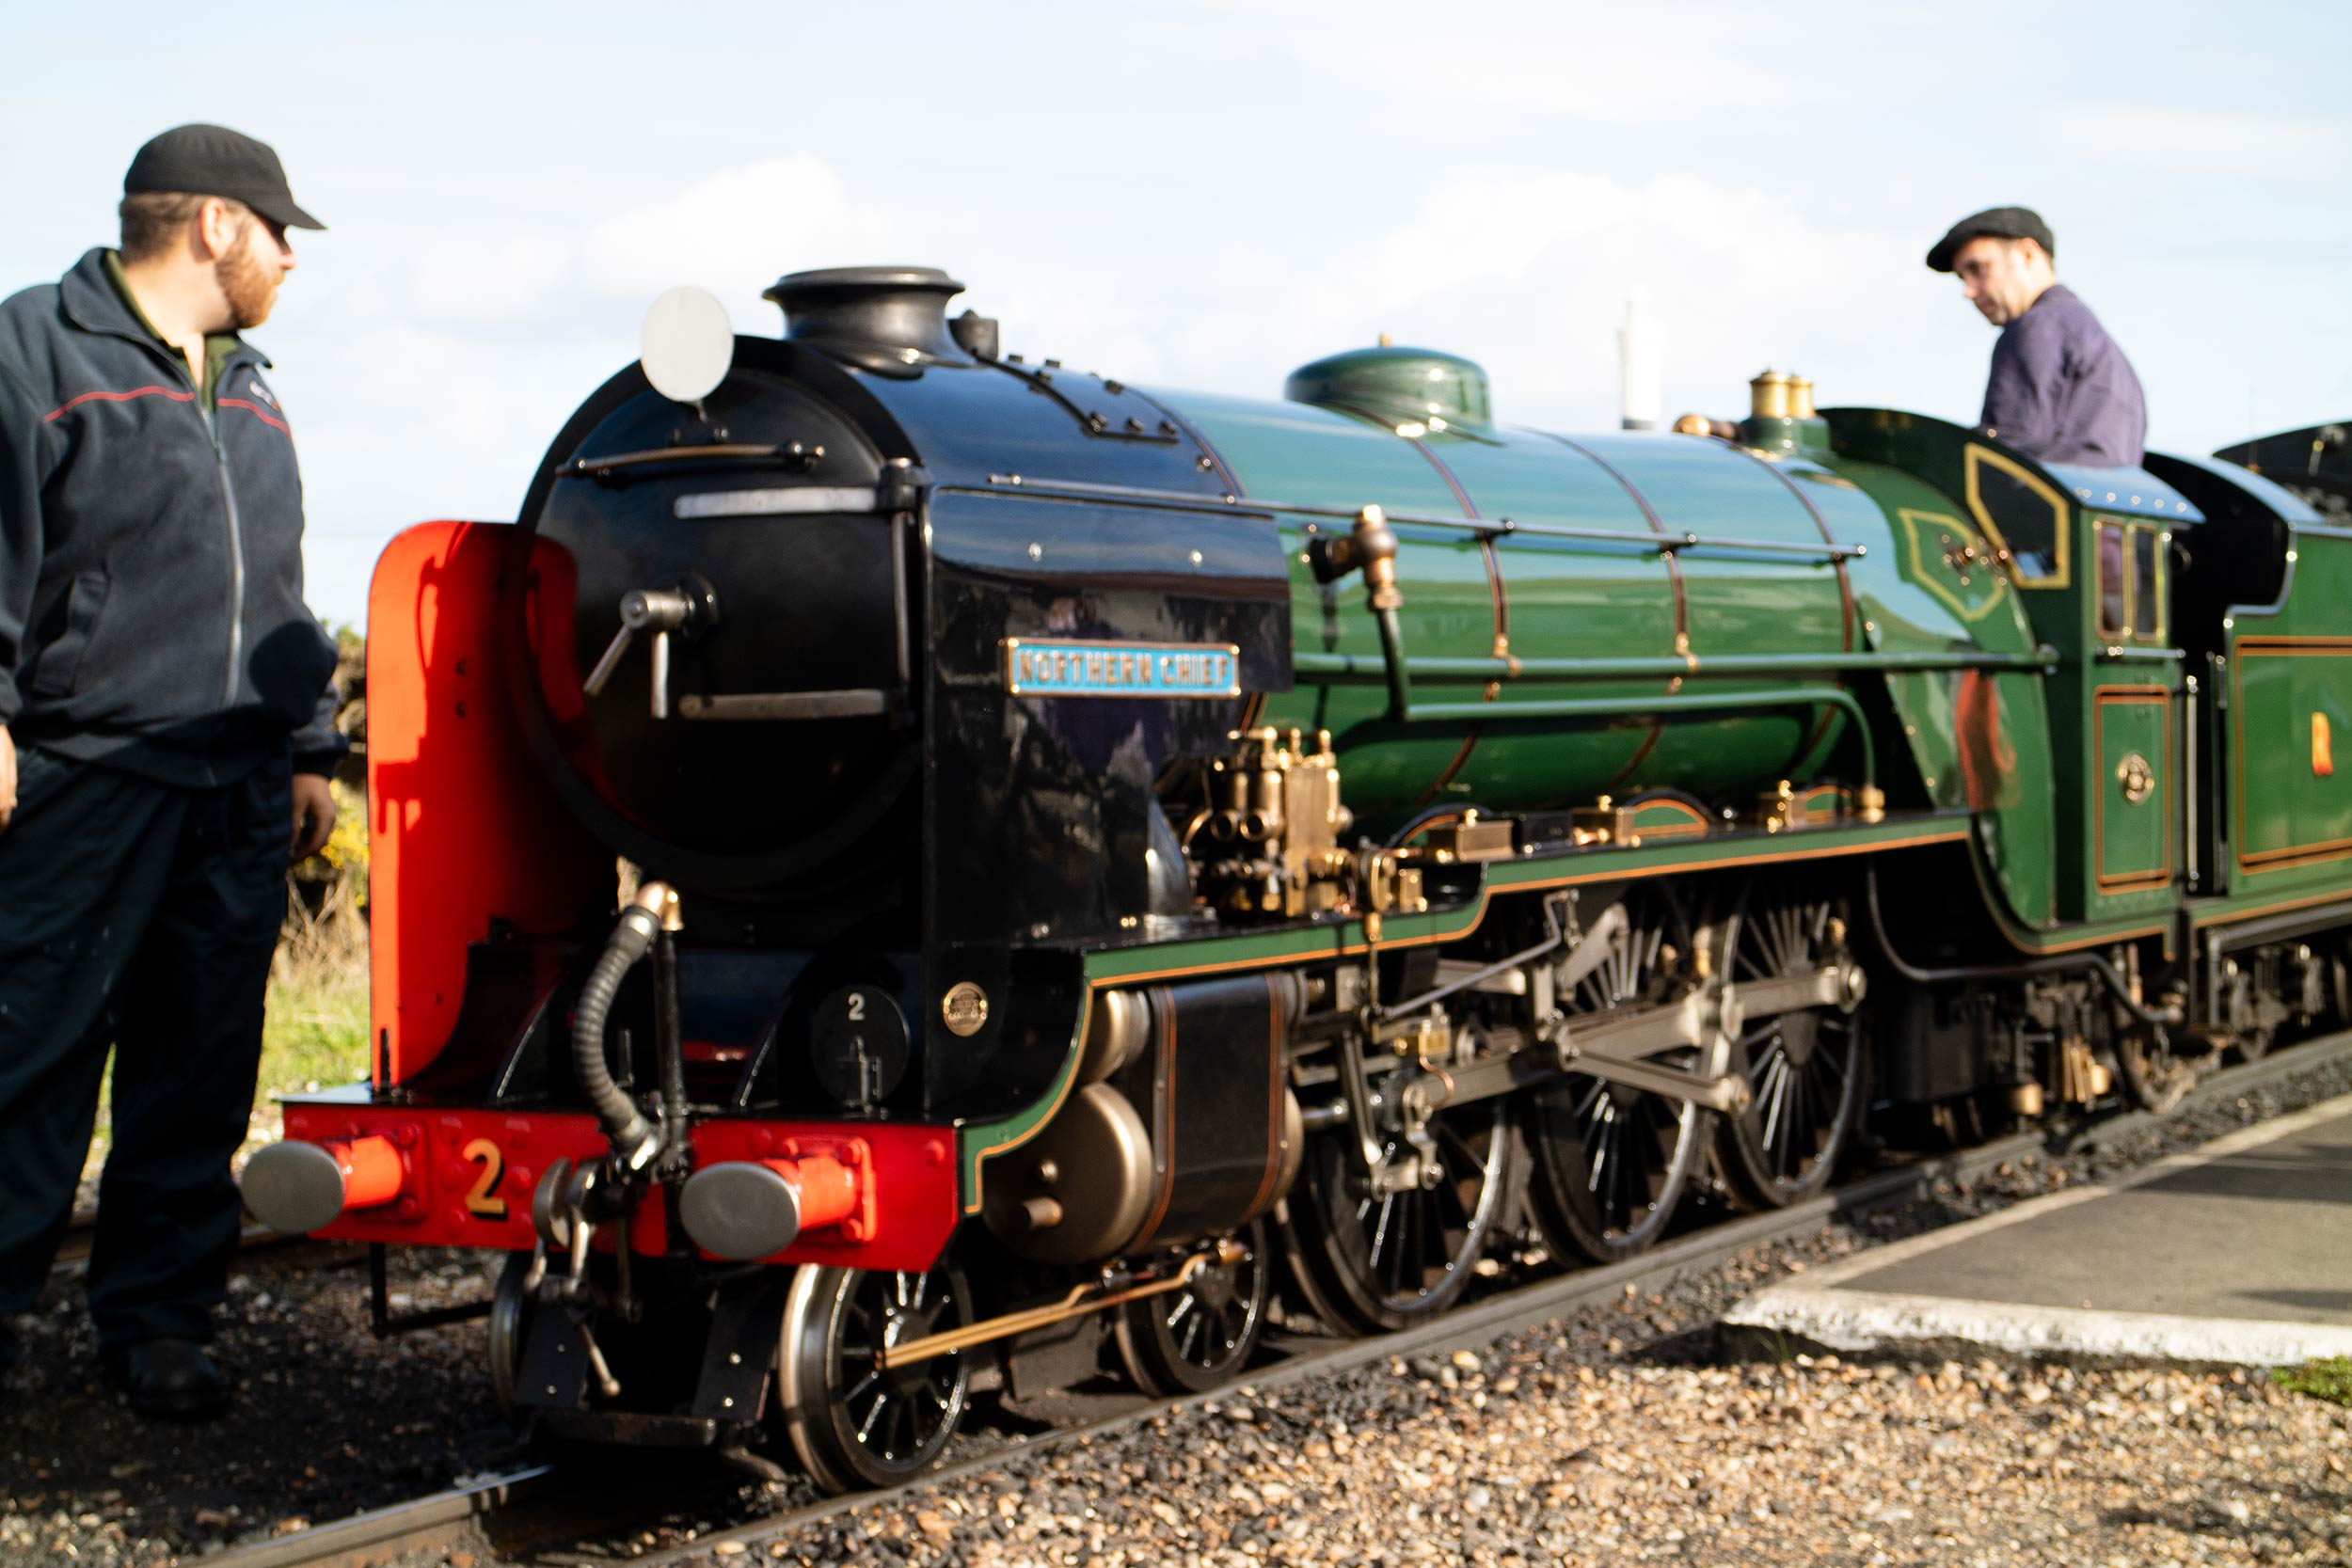 Job vacancies at Romney, Hythe & Dymchurch Railway